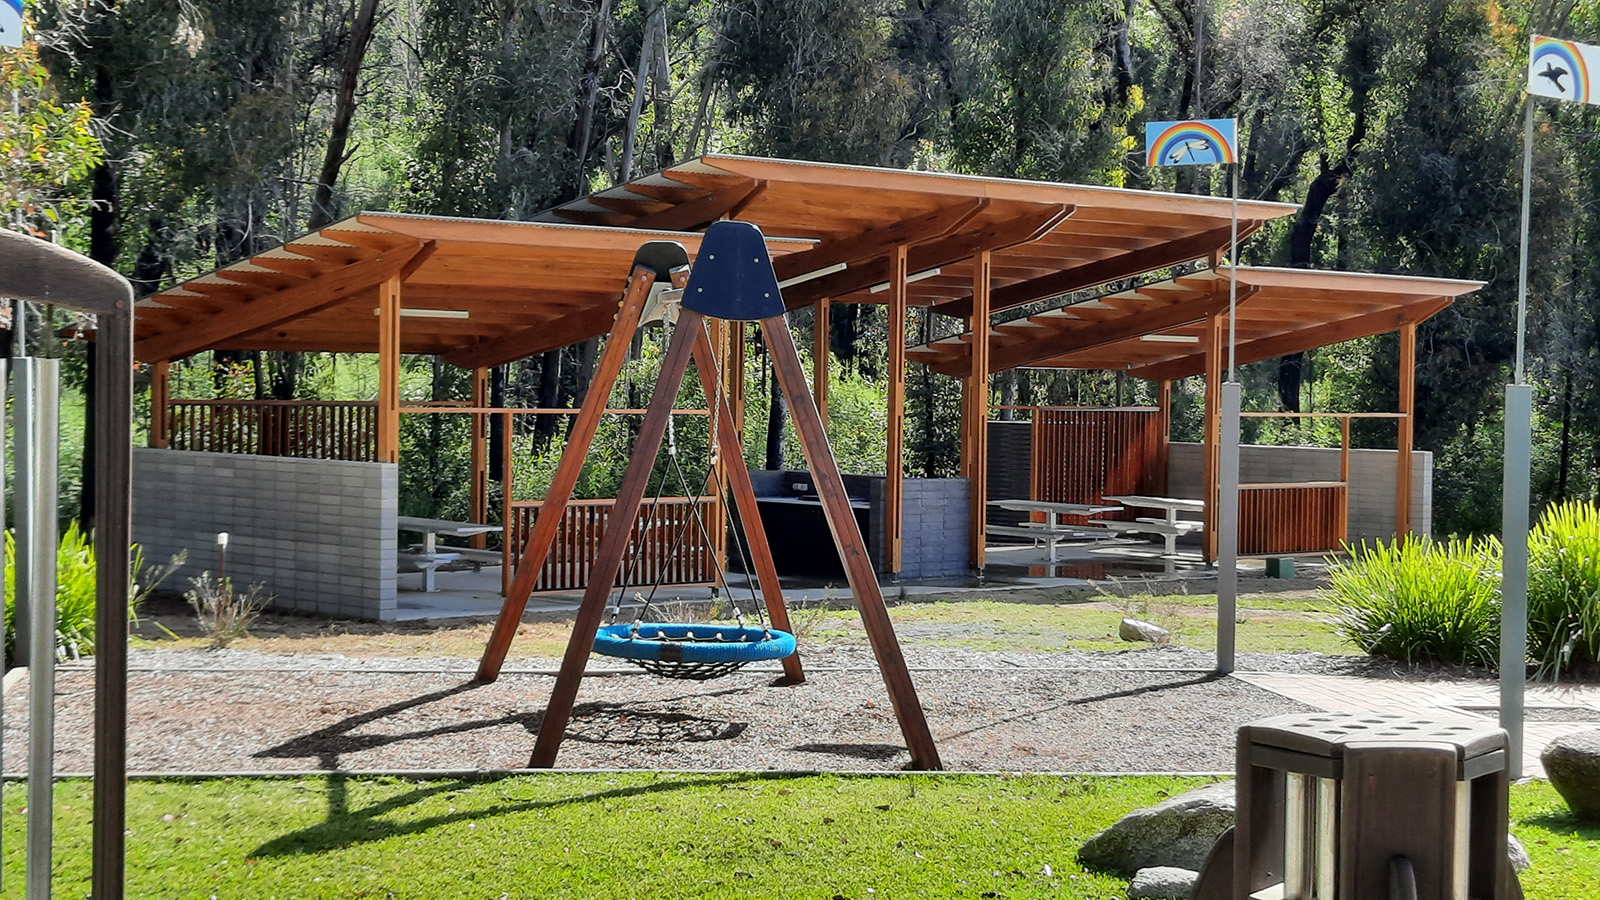 Swing play equipment and an outdoor barbecue shelter area